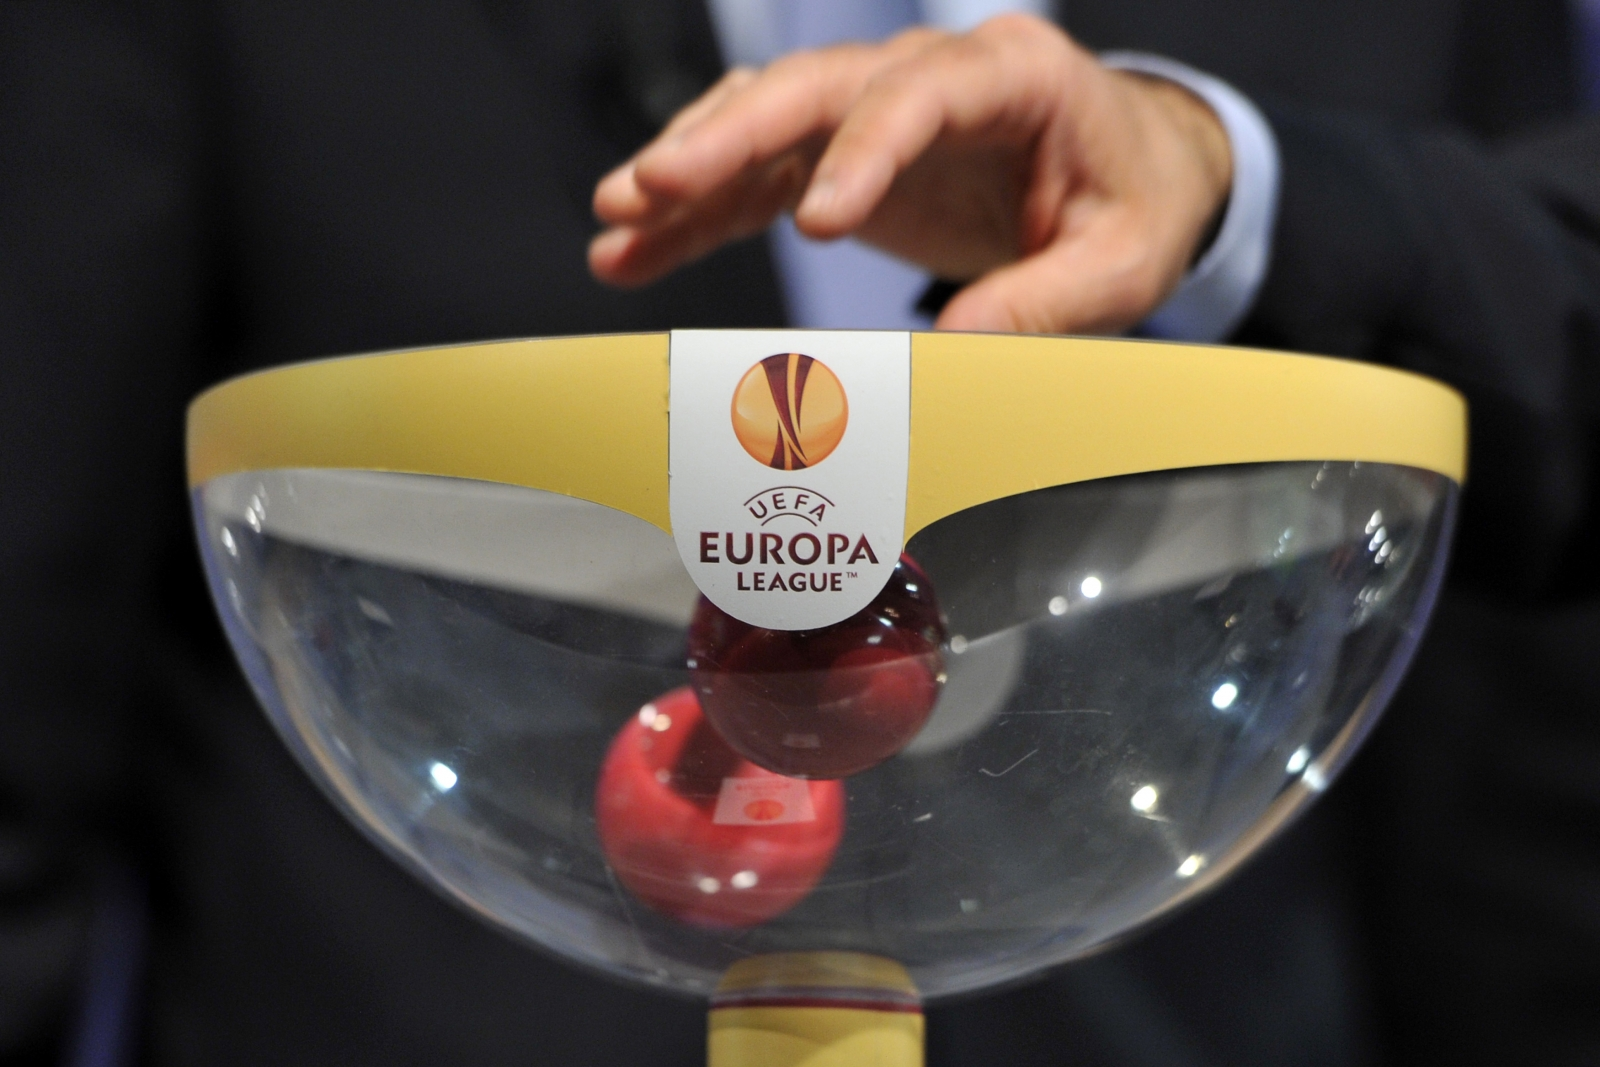 Today the group stage draw of the UEFA Europa League took place in Monaco,  Beşiktaş were drawn in group H with Sporting Lisbon from Portugal, ...